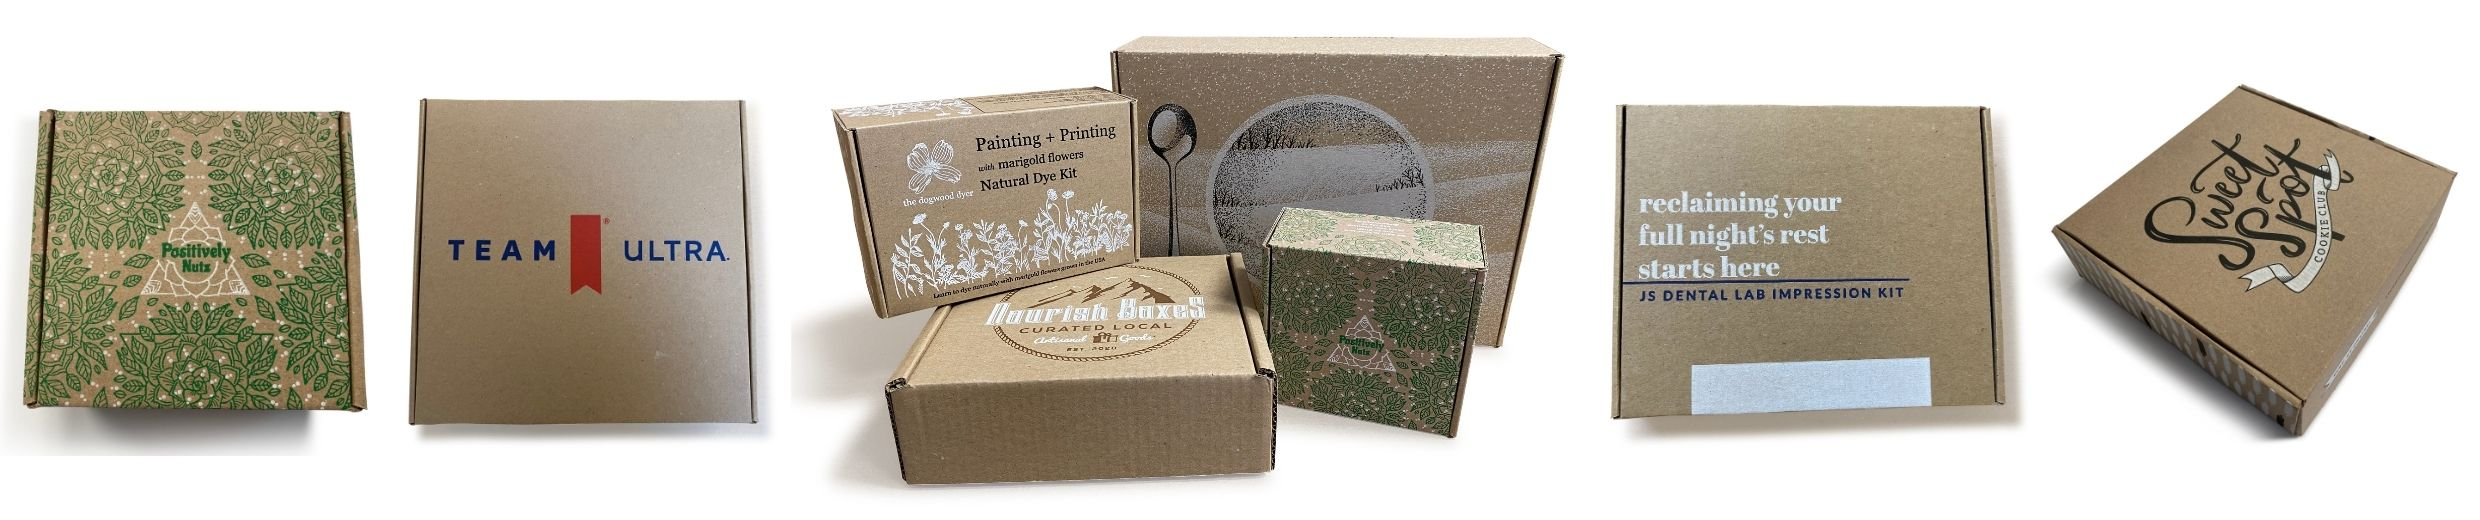 2-color-custom-printed-shipping-boxes.jpg